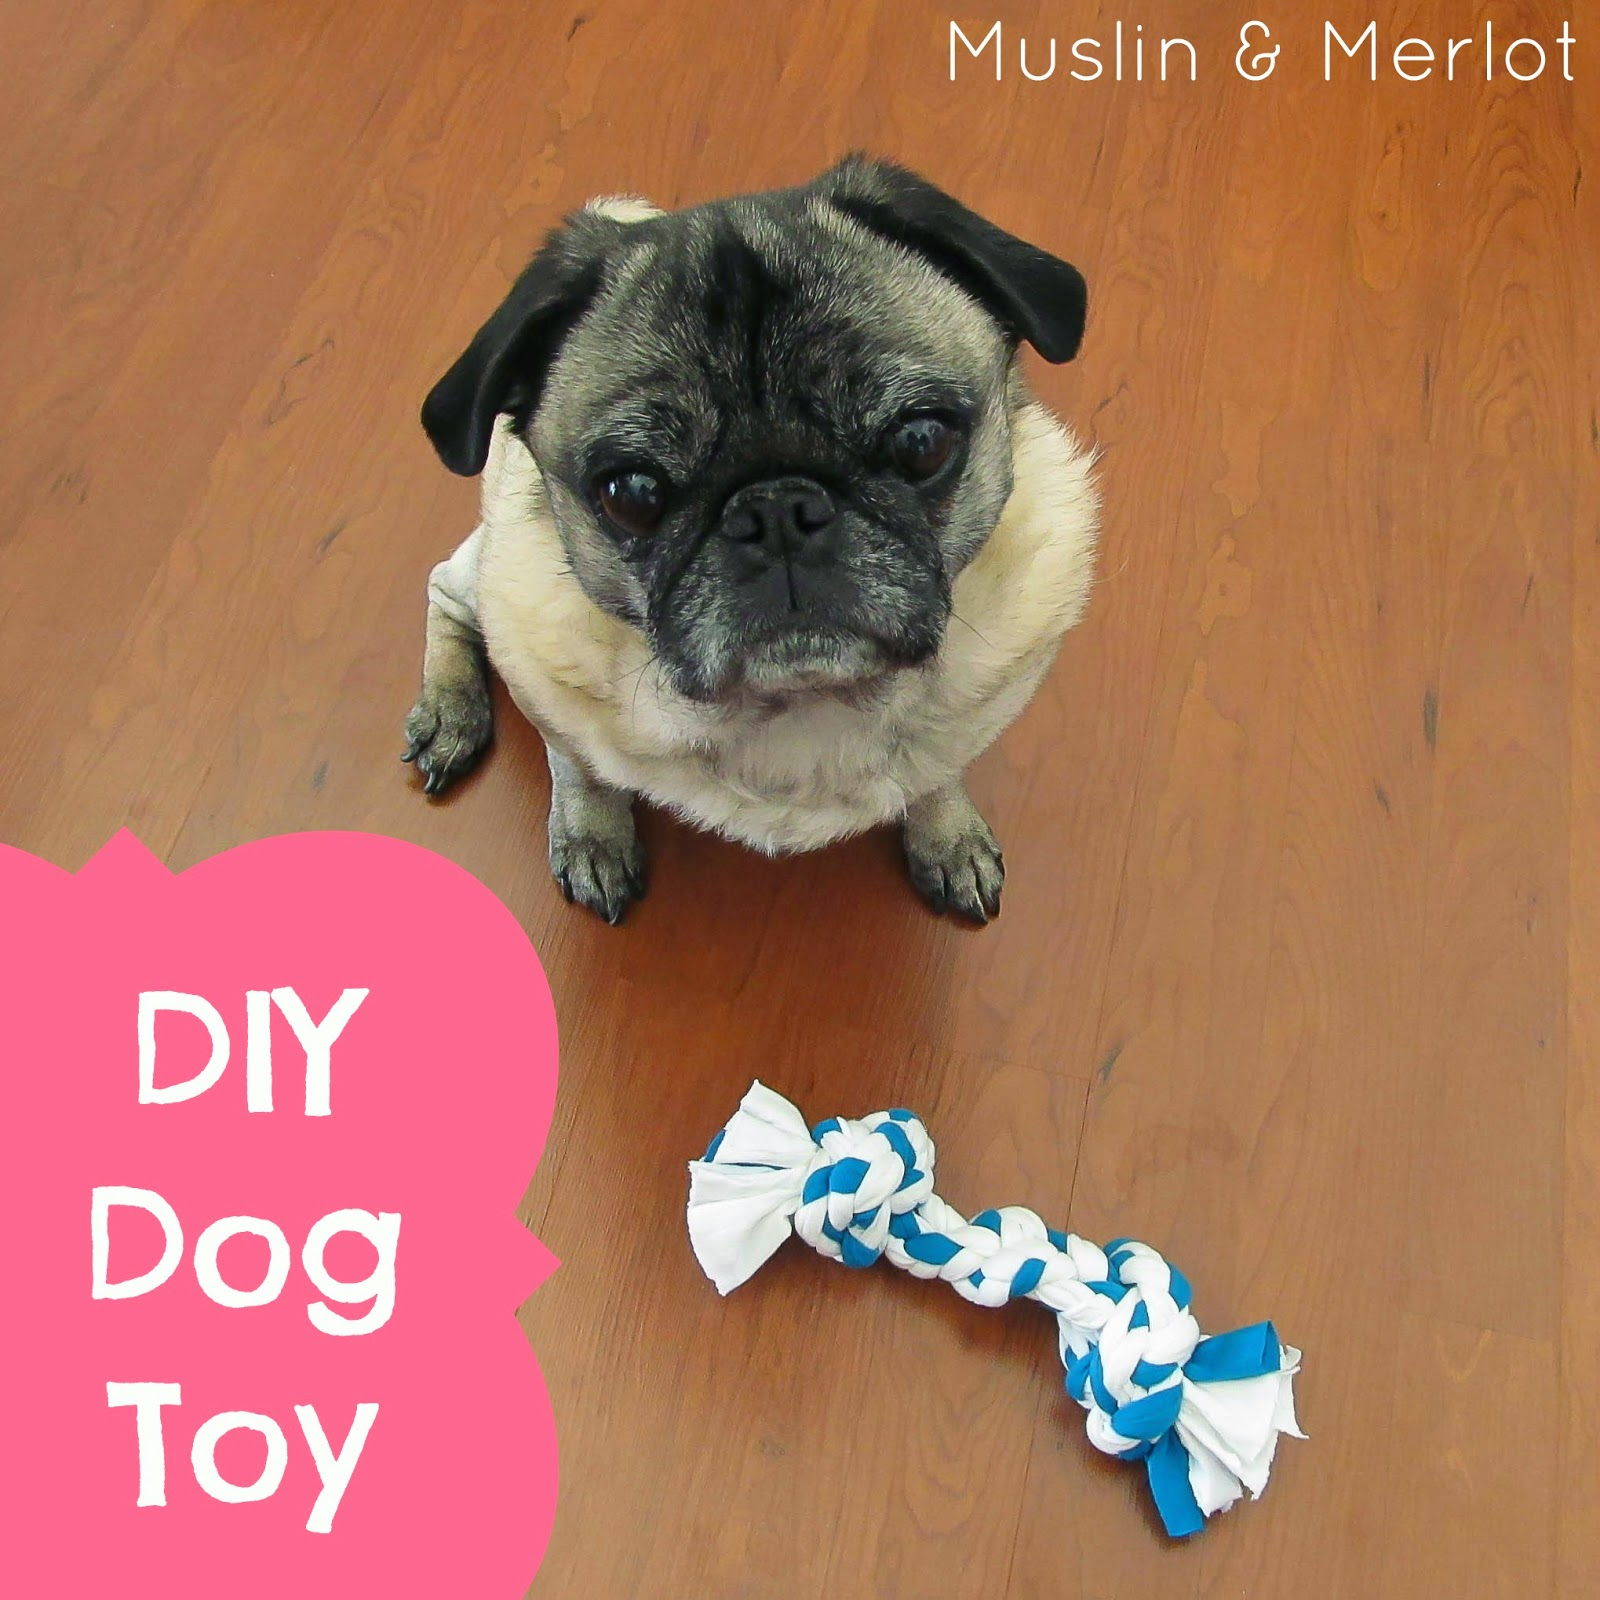 How To Make A Dog Toy From T Shirts